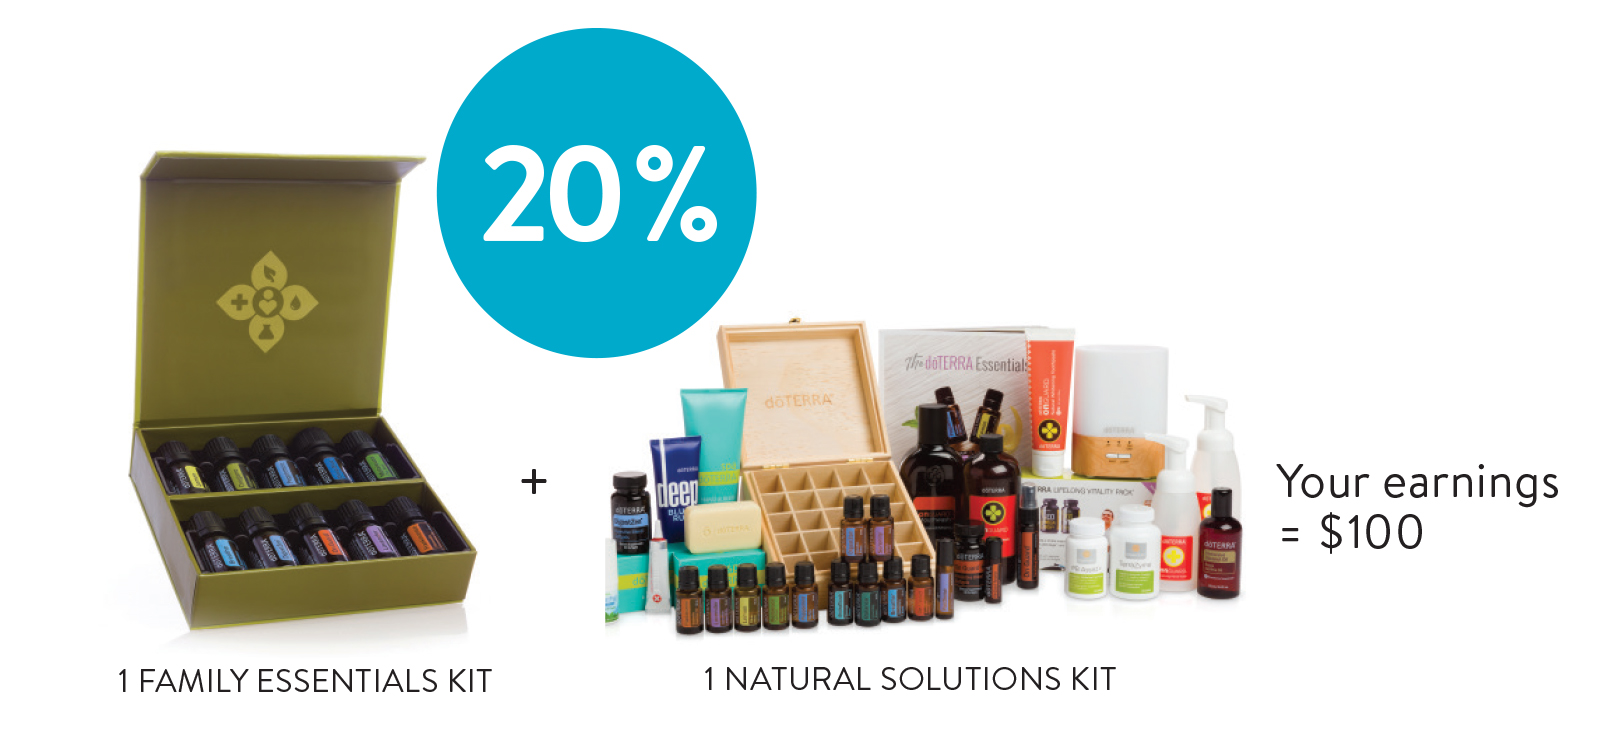 1 Family Essentials Kit plus 1 Natural Solutions Kit equals your earnings 100 dollars